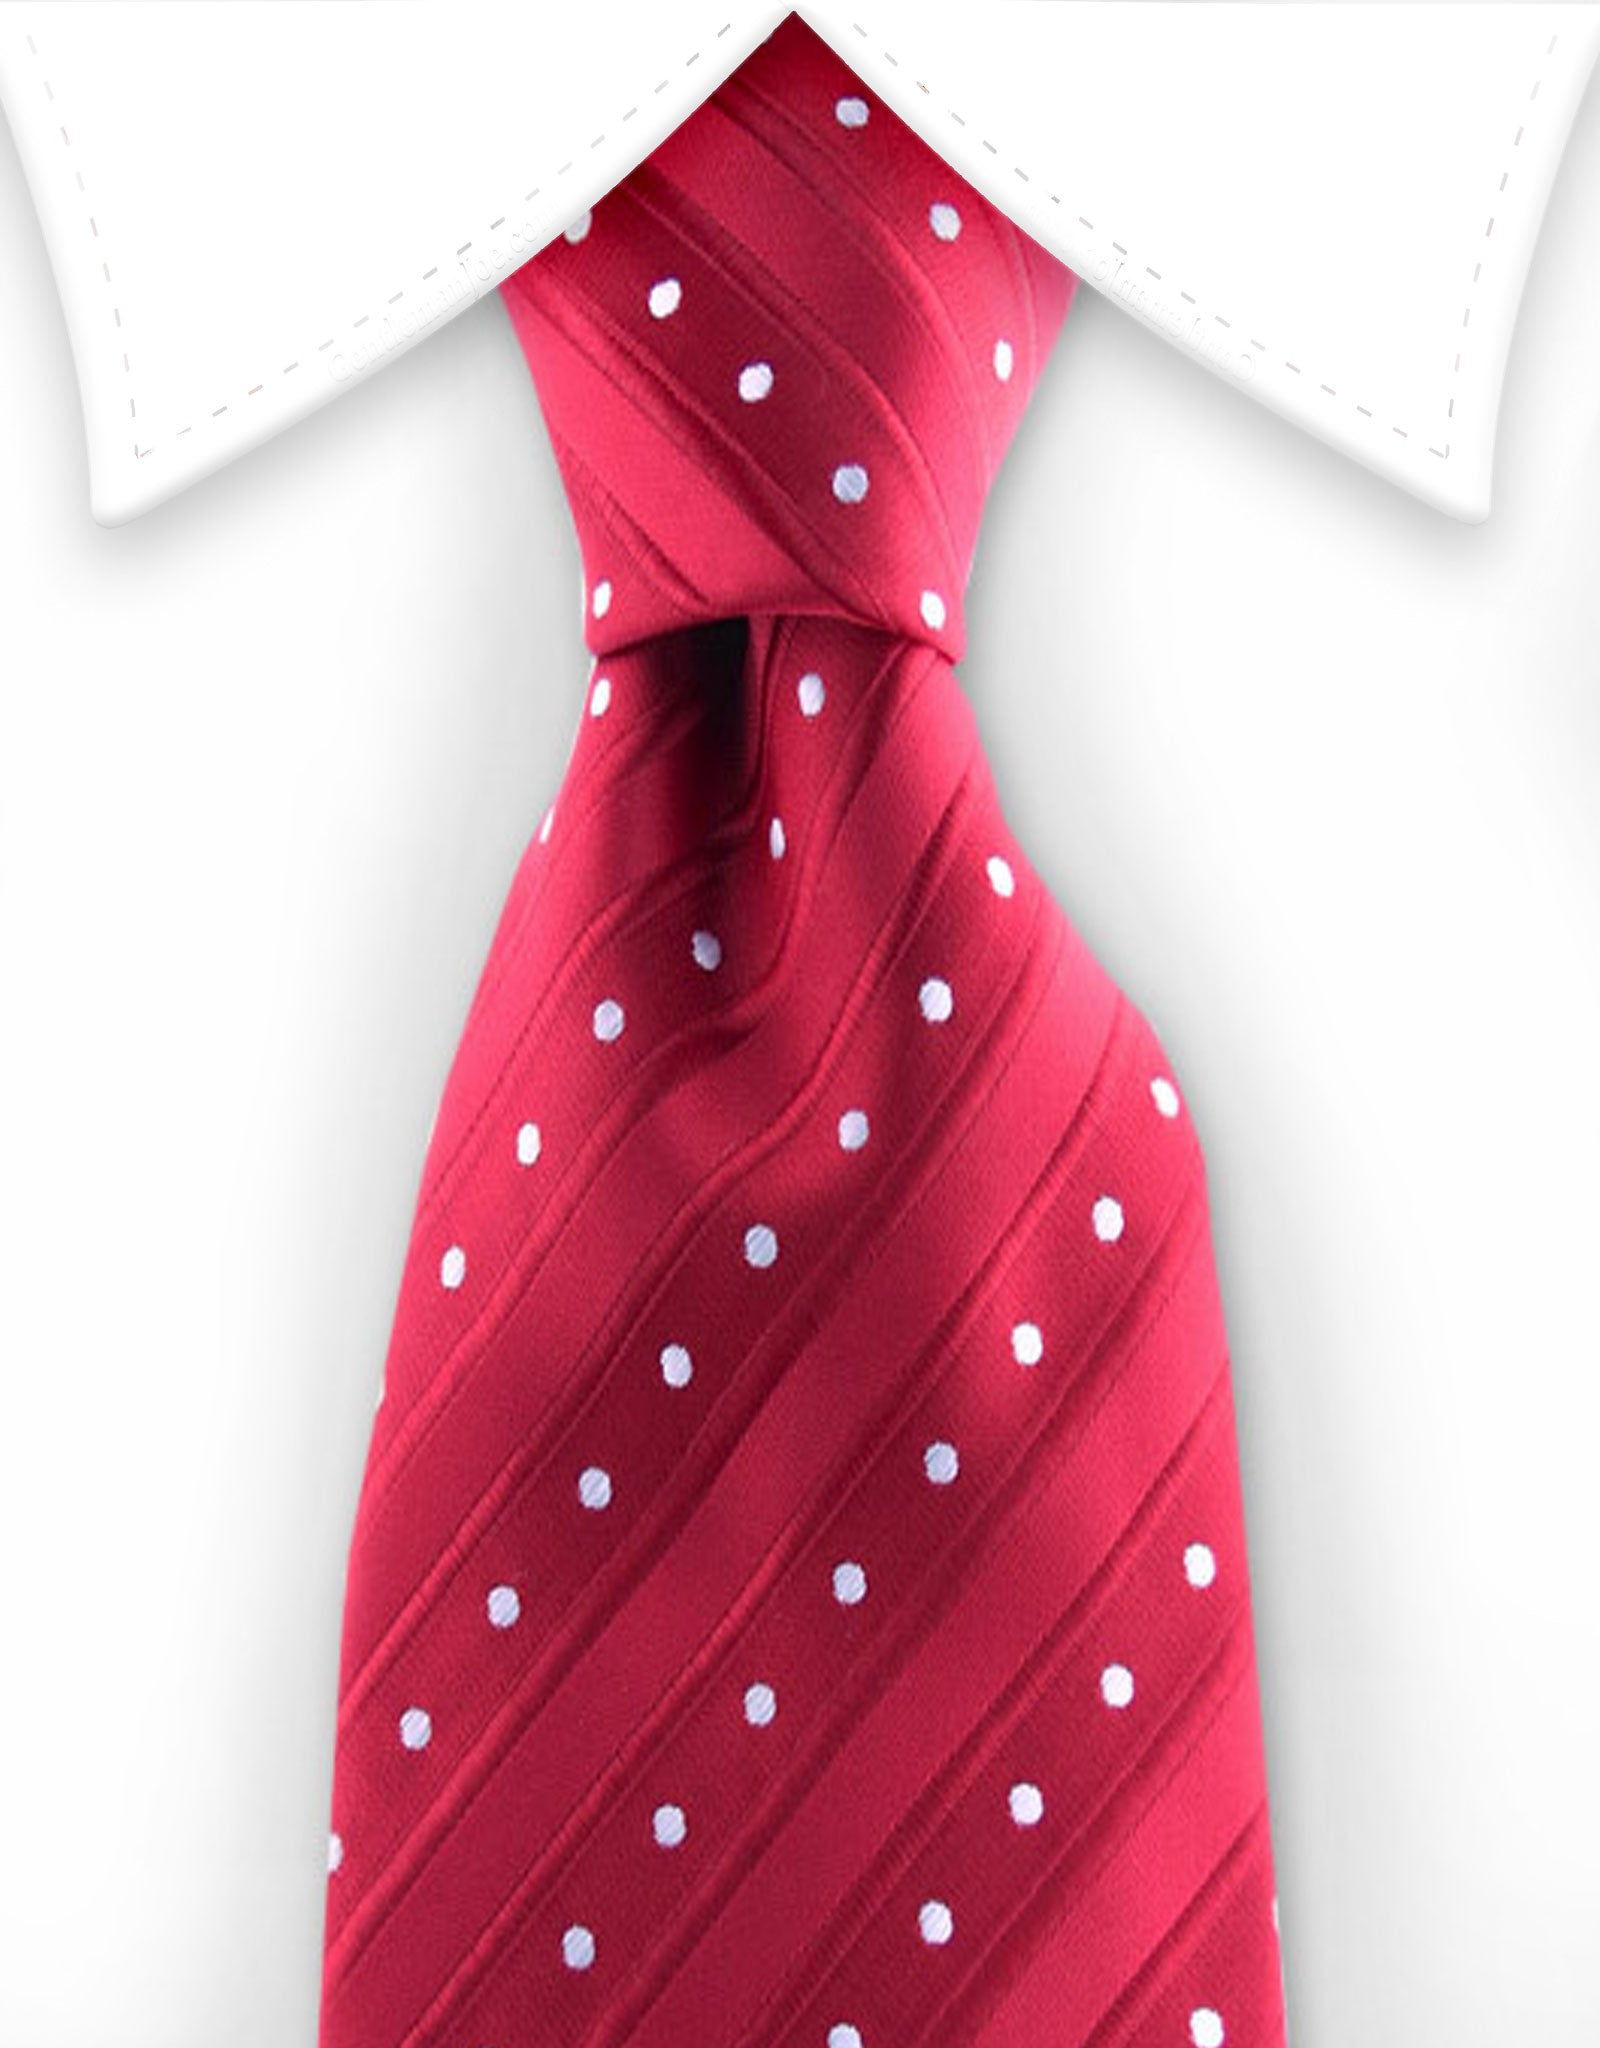 Red tie with white polka dots and stripes